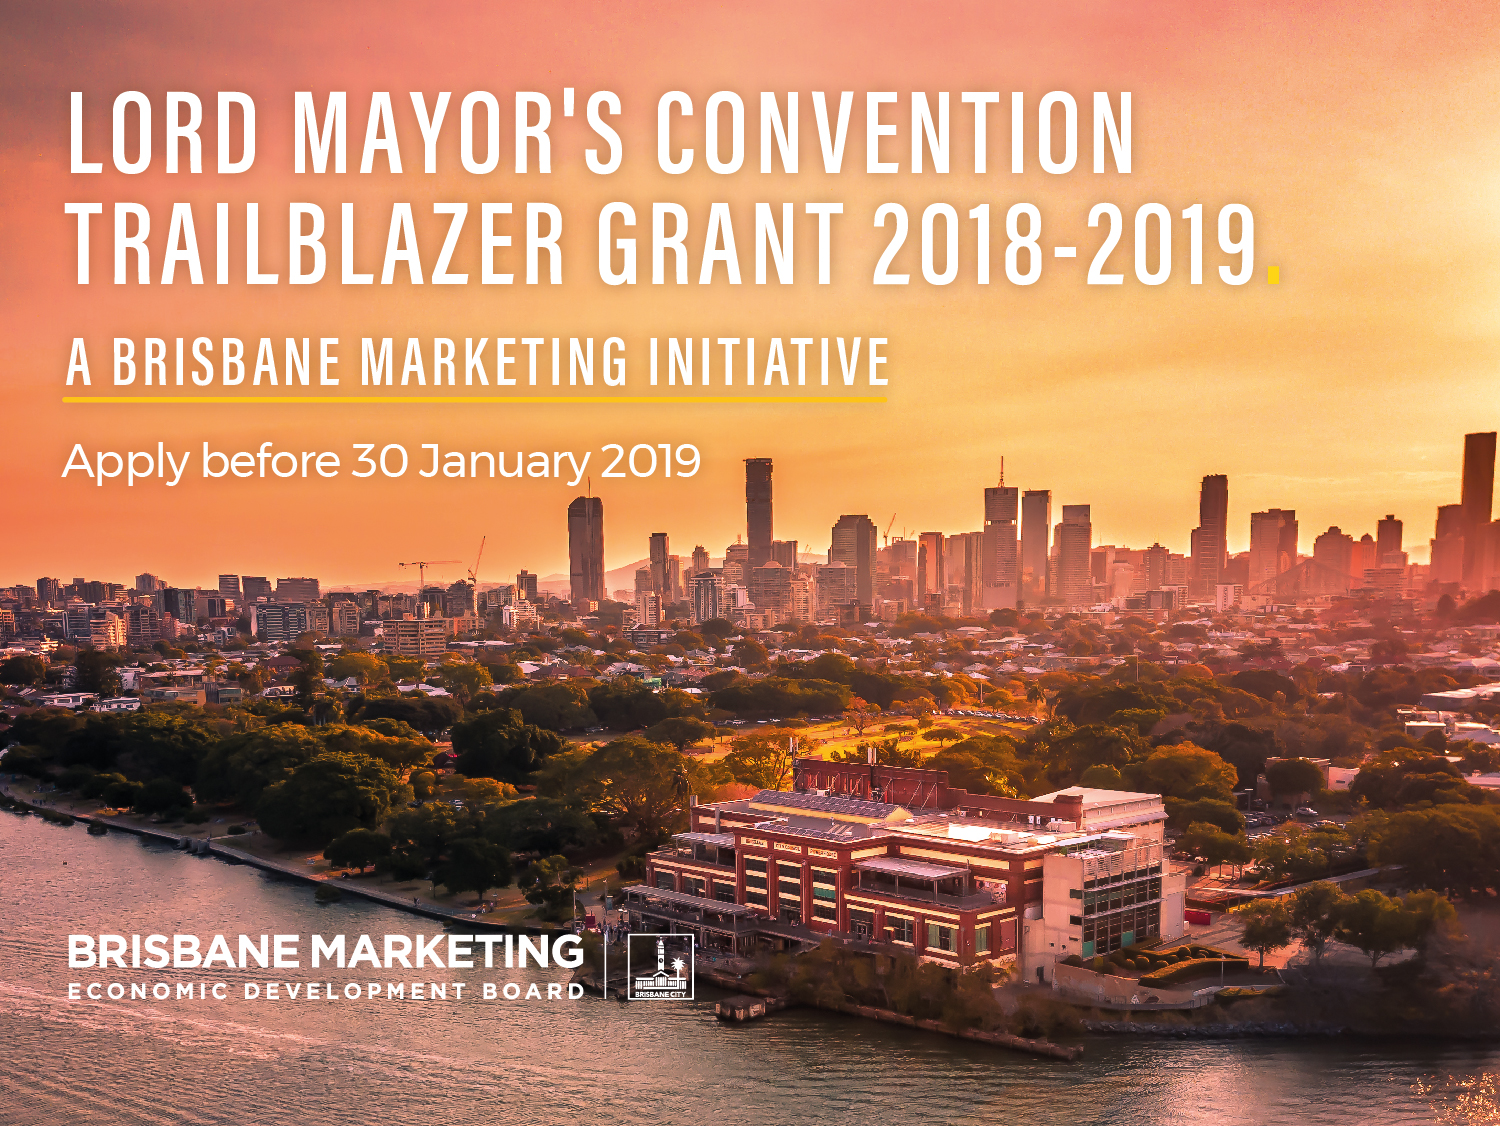 Trailblazer Grant Program